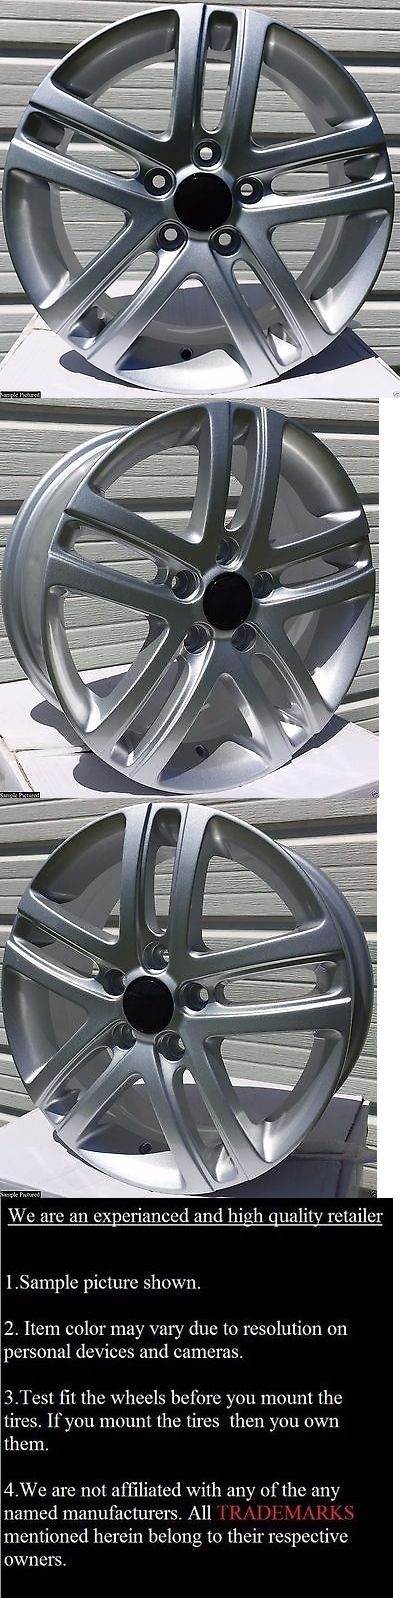 auto parts - general: 4 New 16 Wheels Rims For 2015 2016 2017 Vw Volkswagen Jetta Golf -746 -> BUY IT NOW ONLY: $280 on eBay!